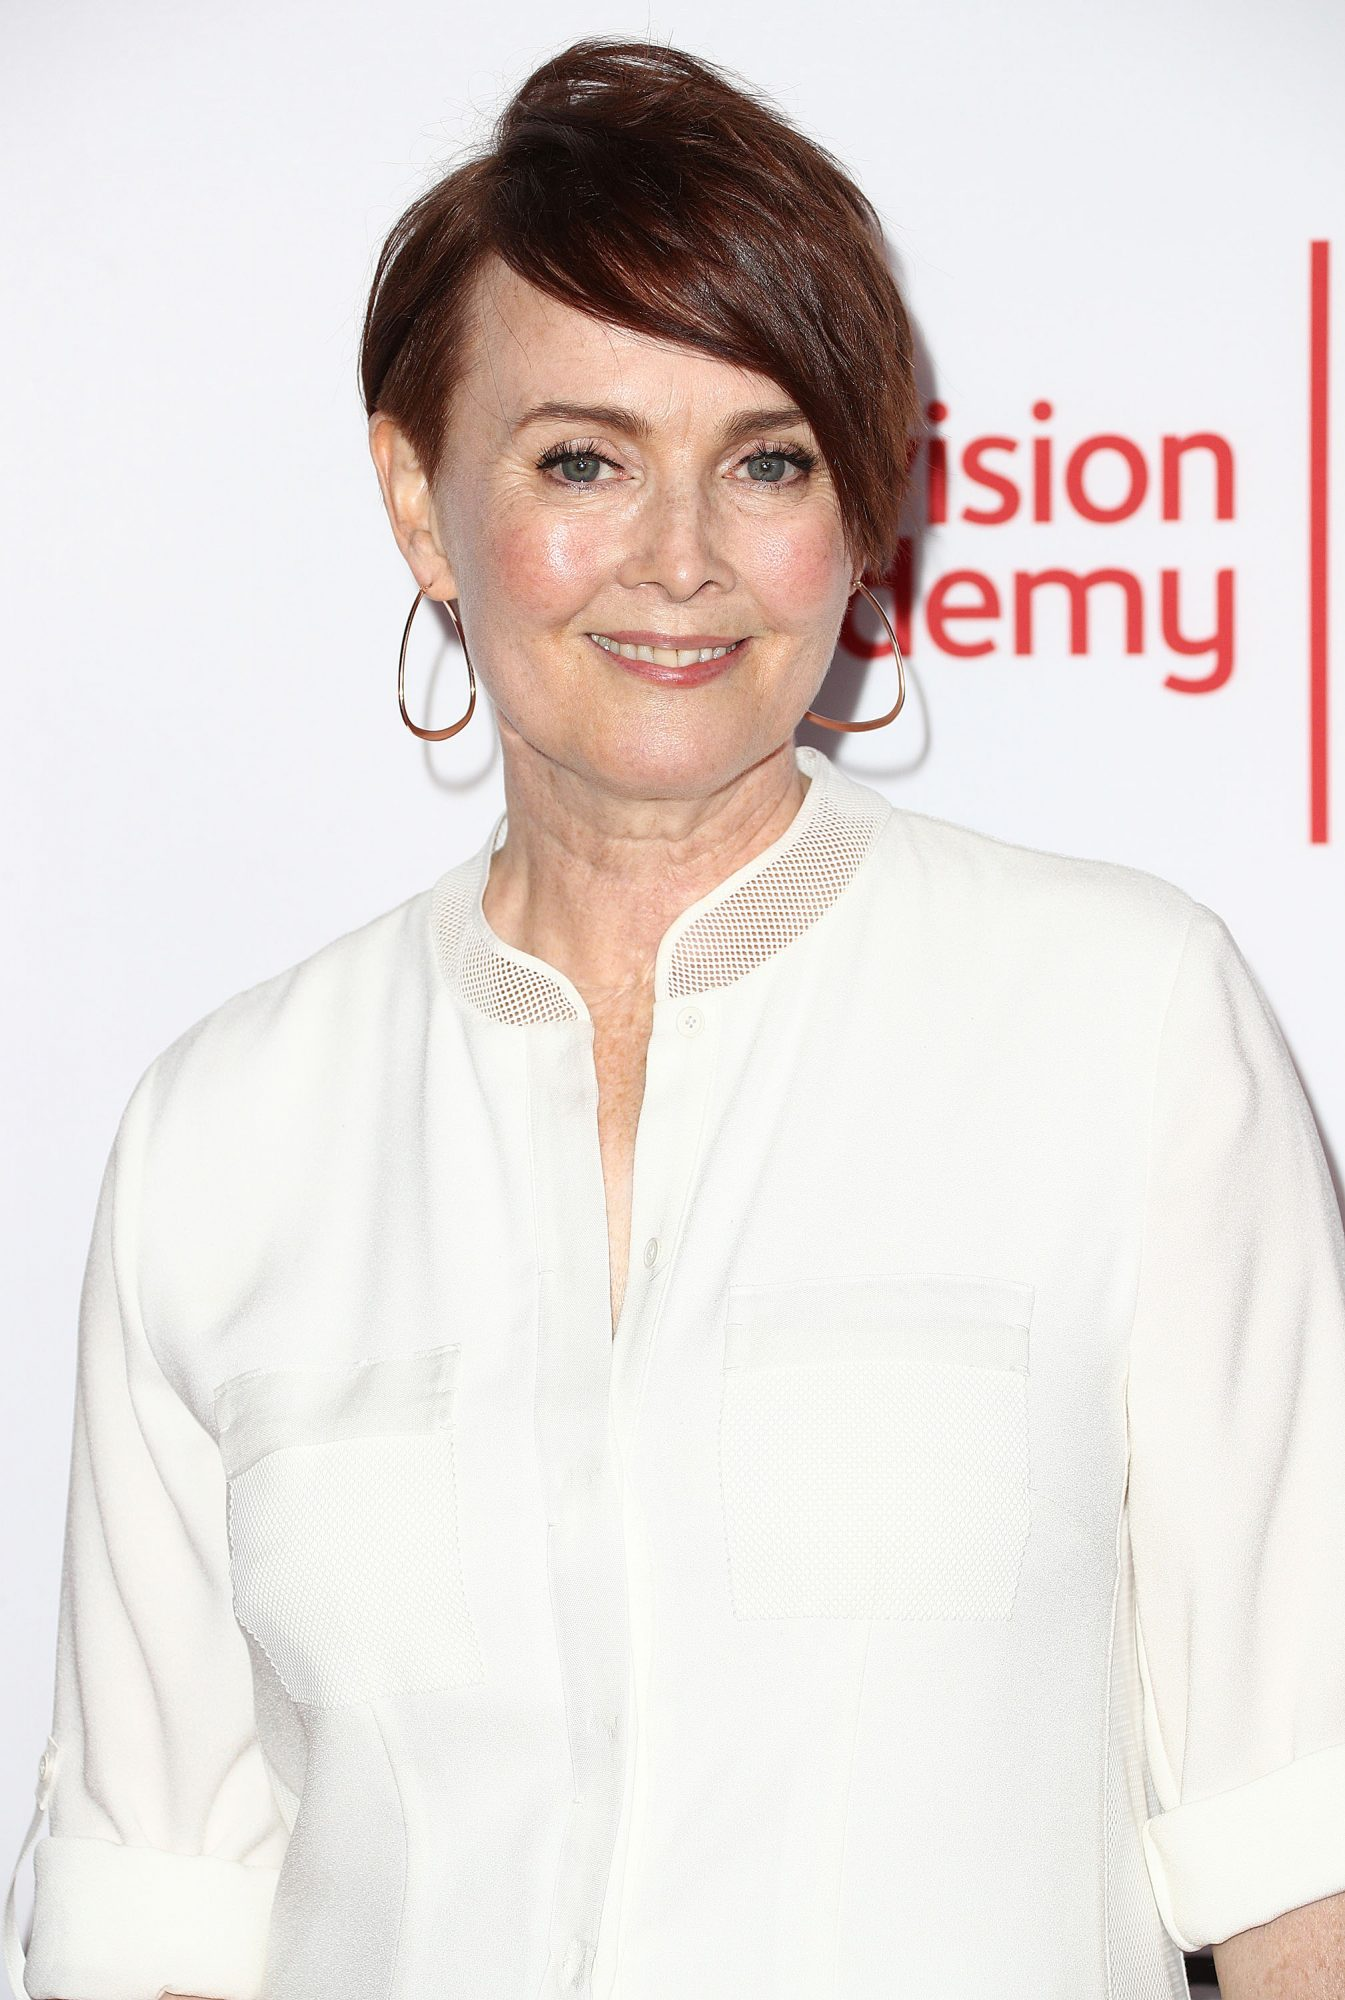 NORTH HOLLYWOOD, CA - NOVEMBER 15: Actress Laura Innes attends the Television Academy's 24th Hall of Fame Ceremony at the Saban Media Center on November 15, 2017 in North Hollywood, California.  (Photo by Frederick M. Brown/Getty Images)